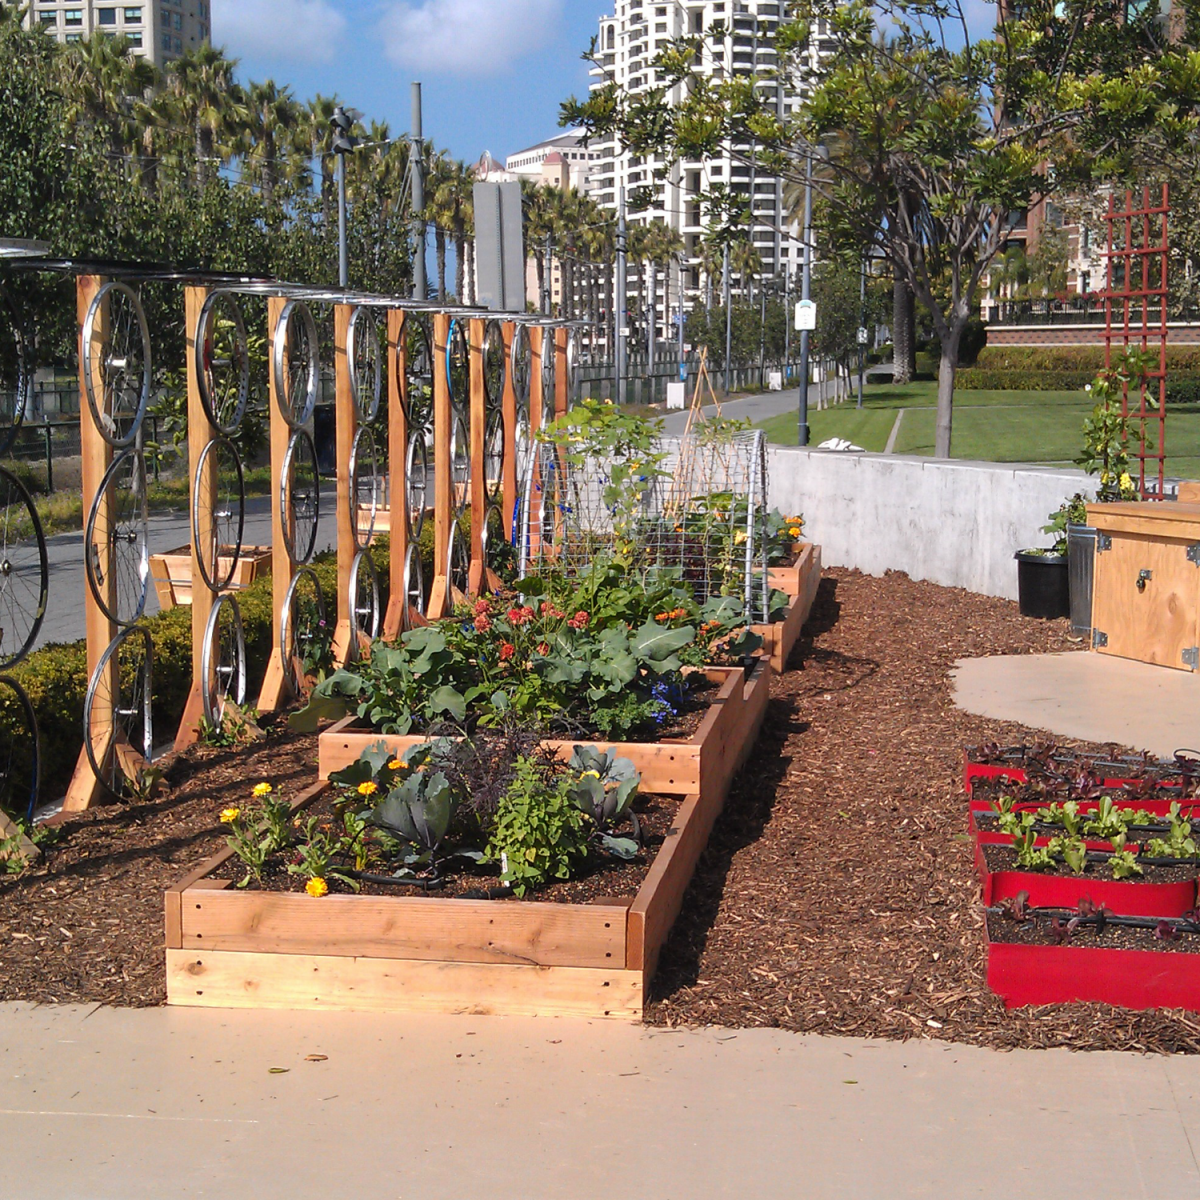 Garden installed and maintained by Urban Plantations at the New Children's  Museum in downtown San Diego - Pioneering San Diego Business Builds Urban Edible Landscapes